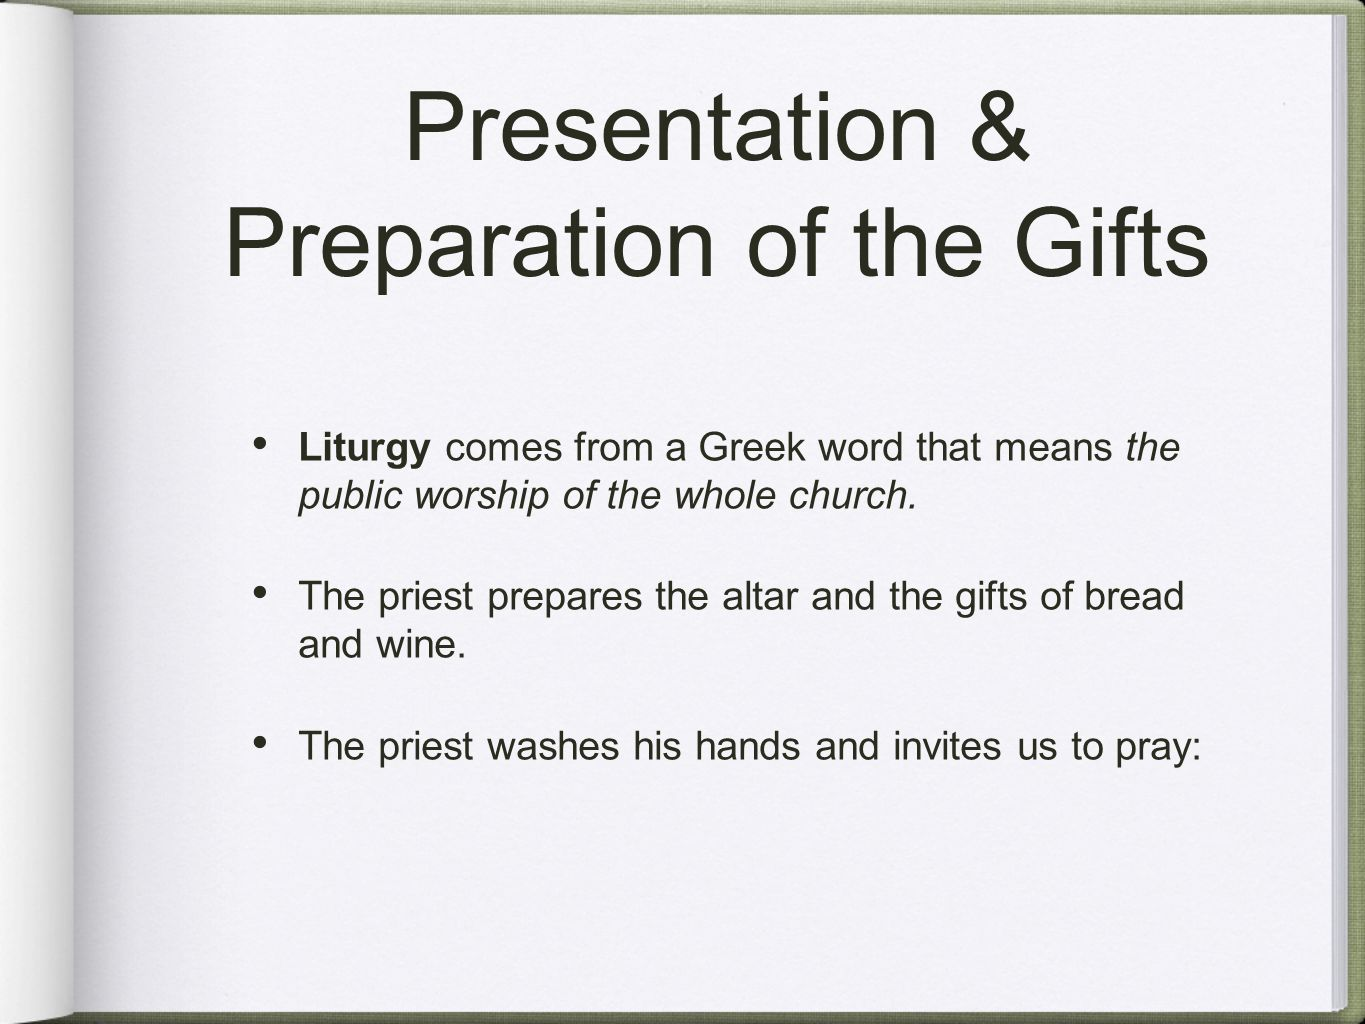 Presentation & Preparation of the Gifts